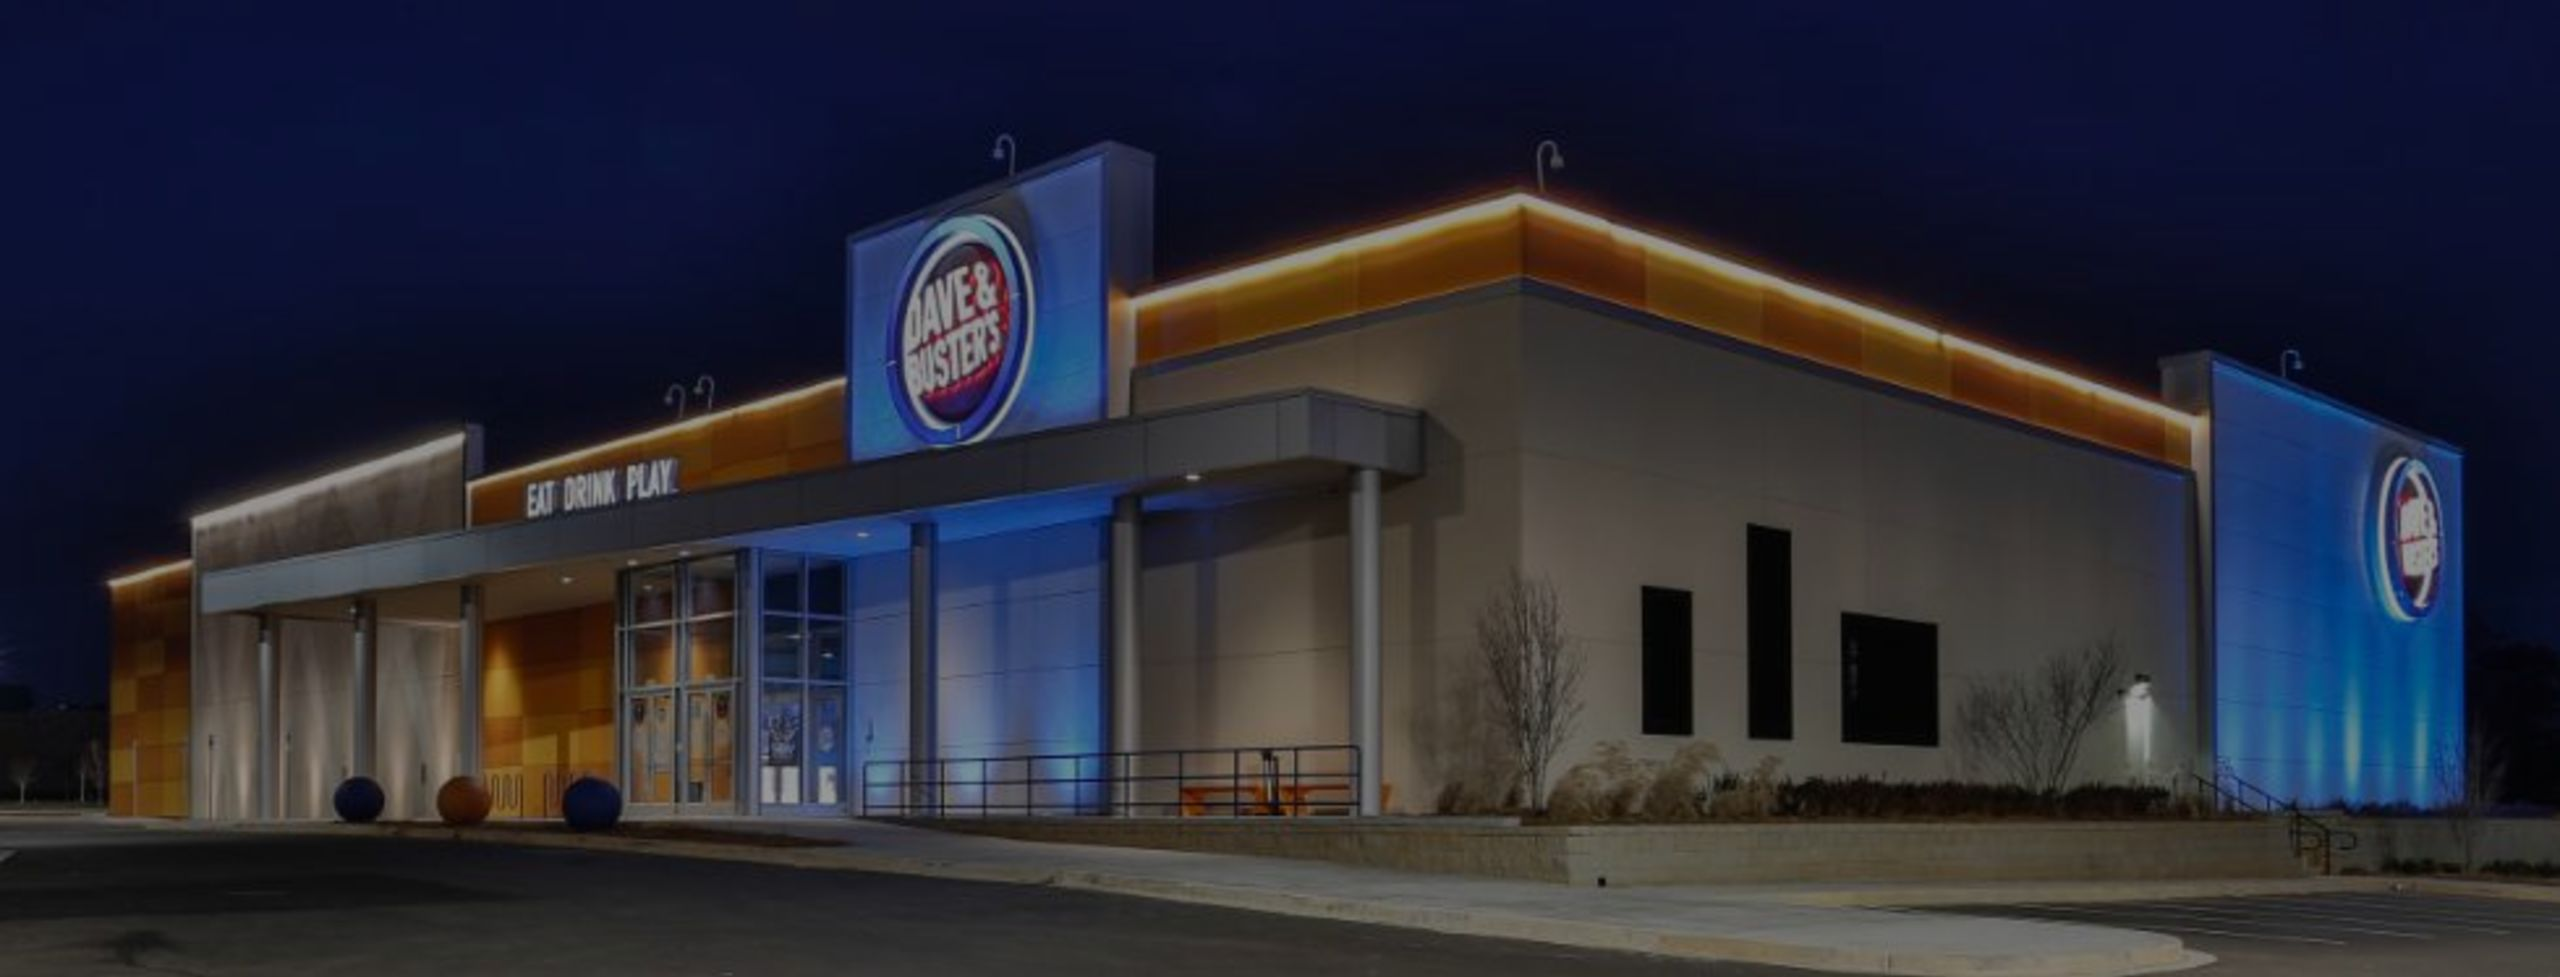 Dave and Buster's Announces New Celebration Pointe Location!